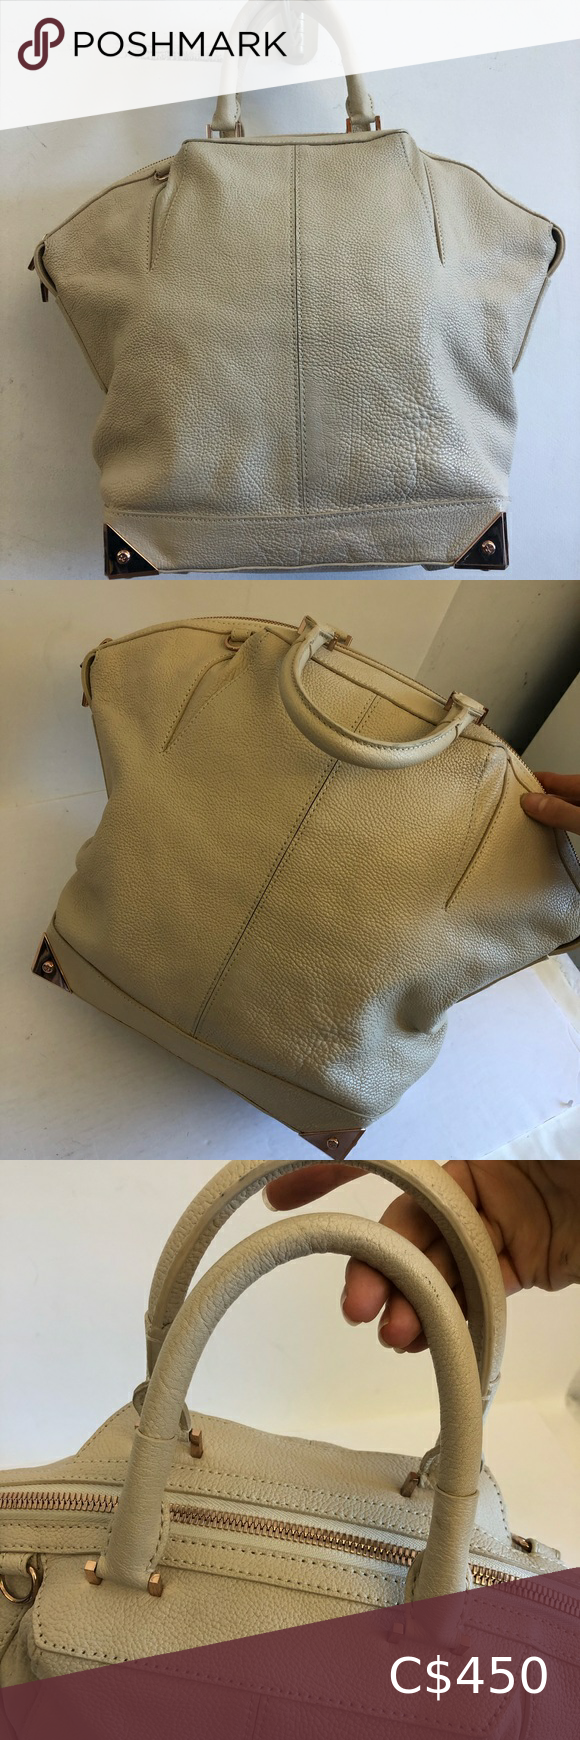 Alexander Want Large Beige Bag